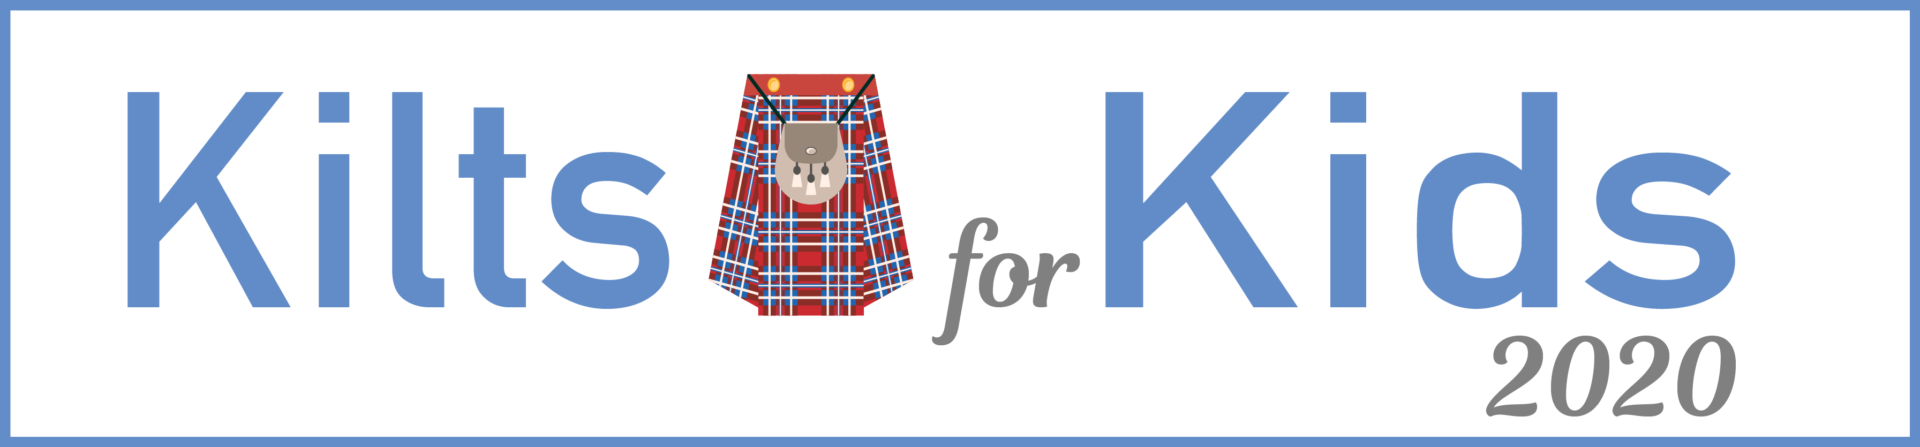 Kilts for Kids Banner